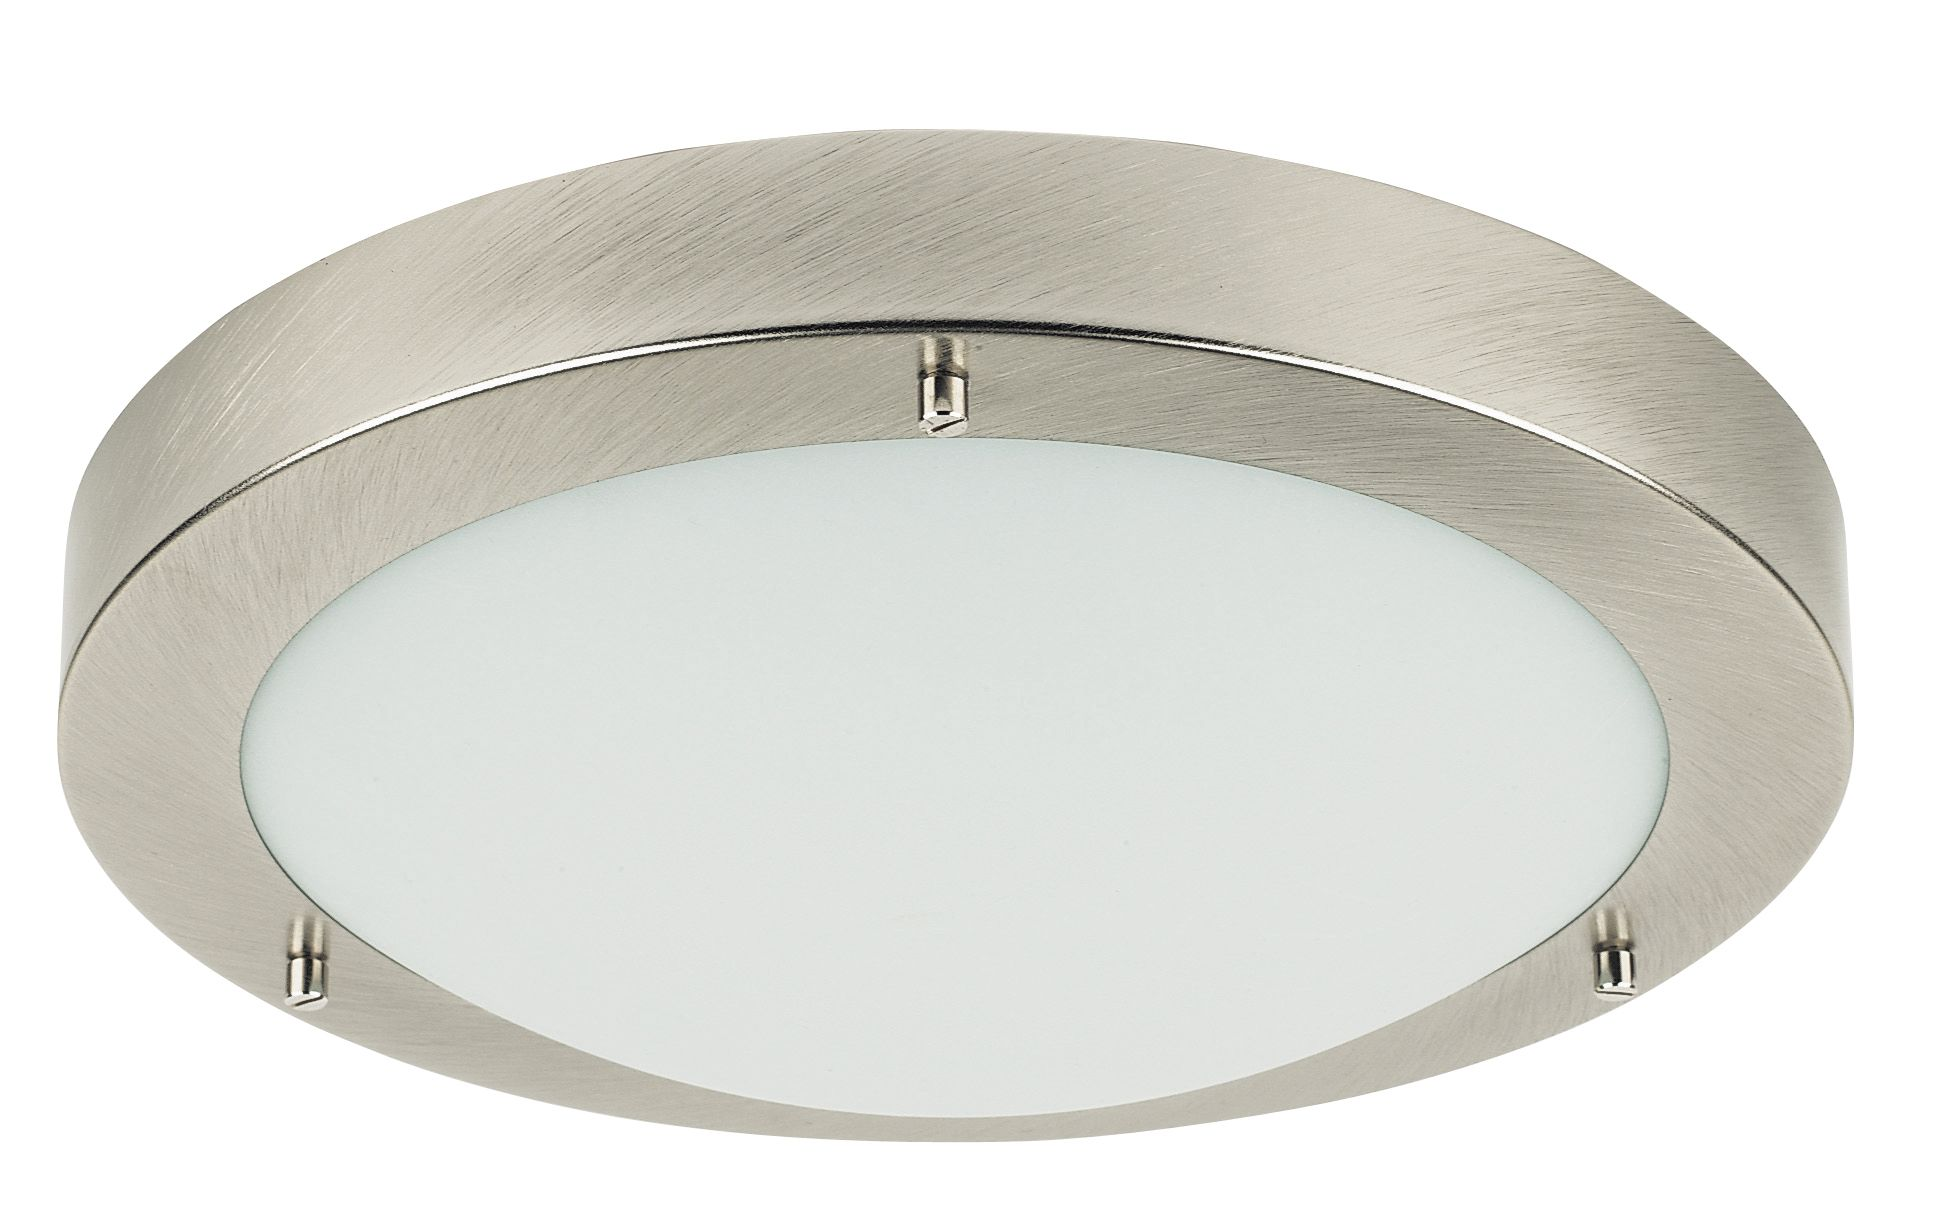 Bathroom ceiling lights b q - Portal Brushed Chrome Effect Bathroom Flush Light Departments Diy At B Q